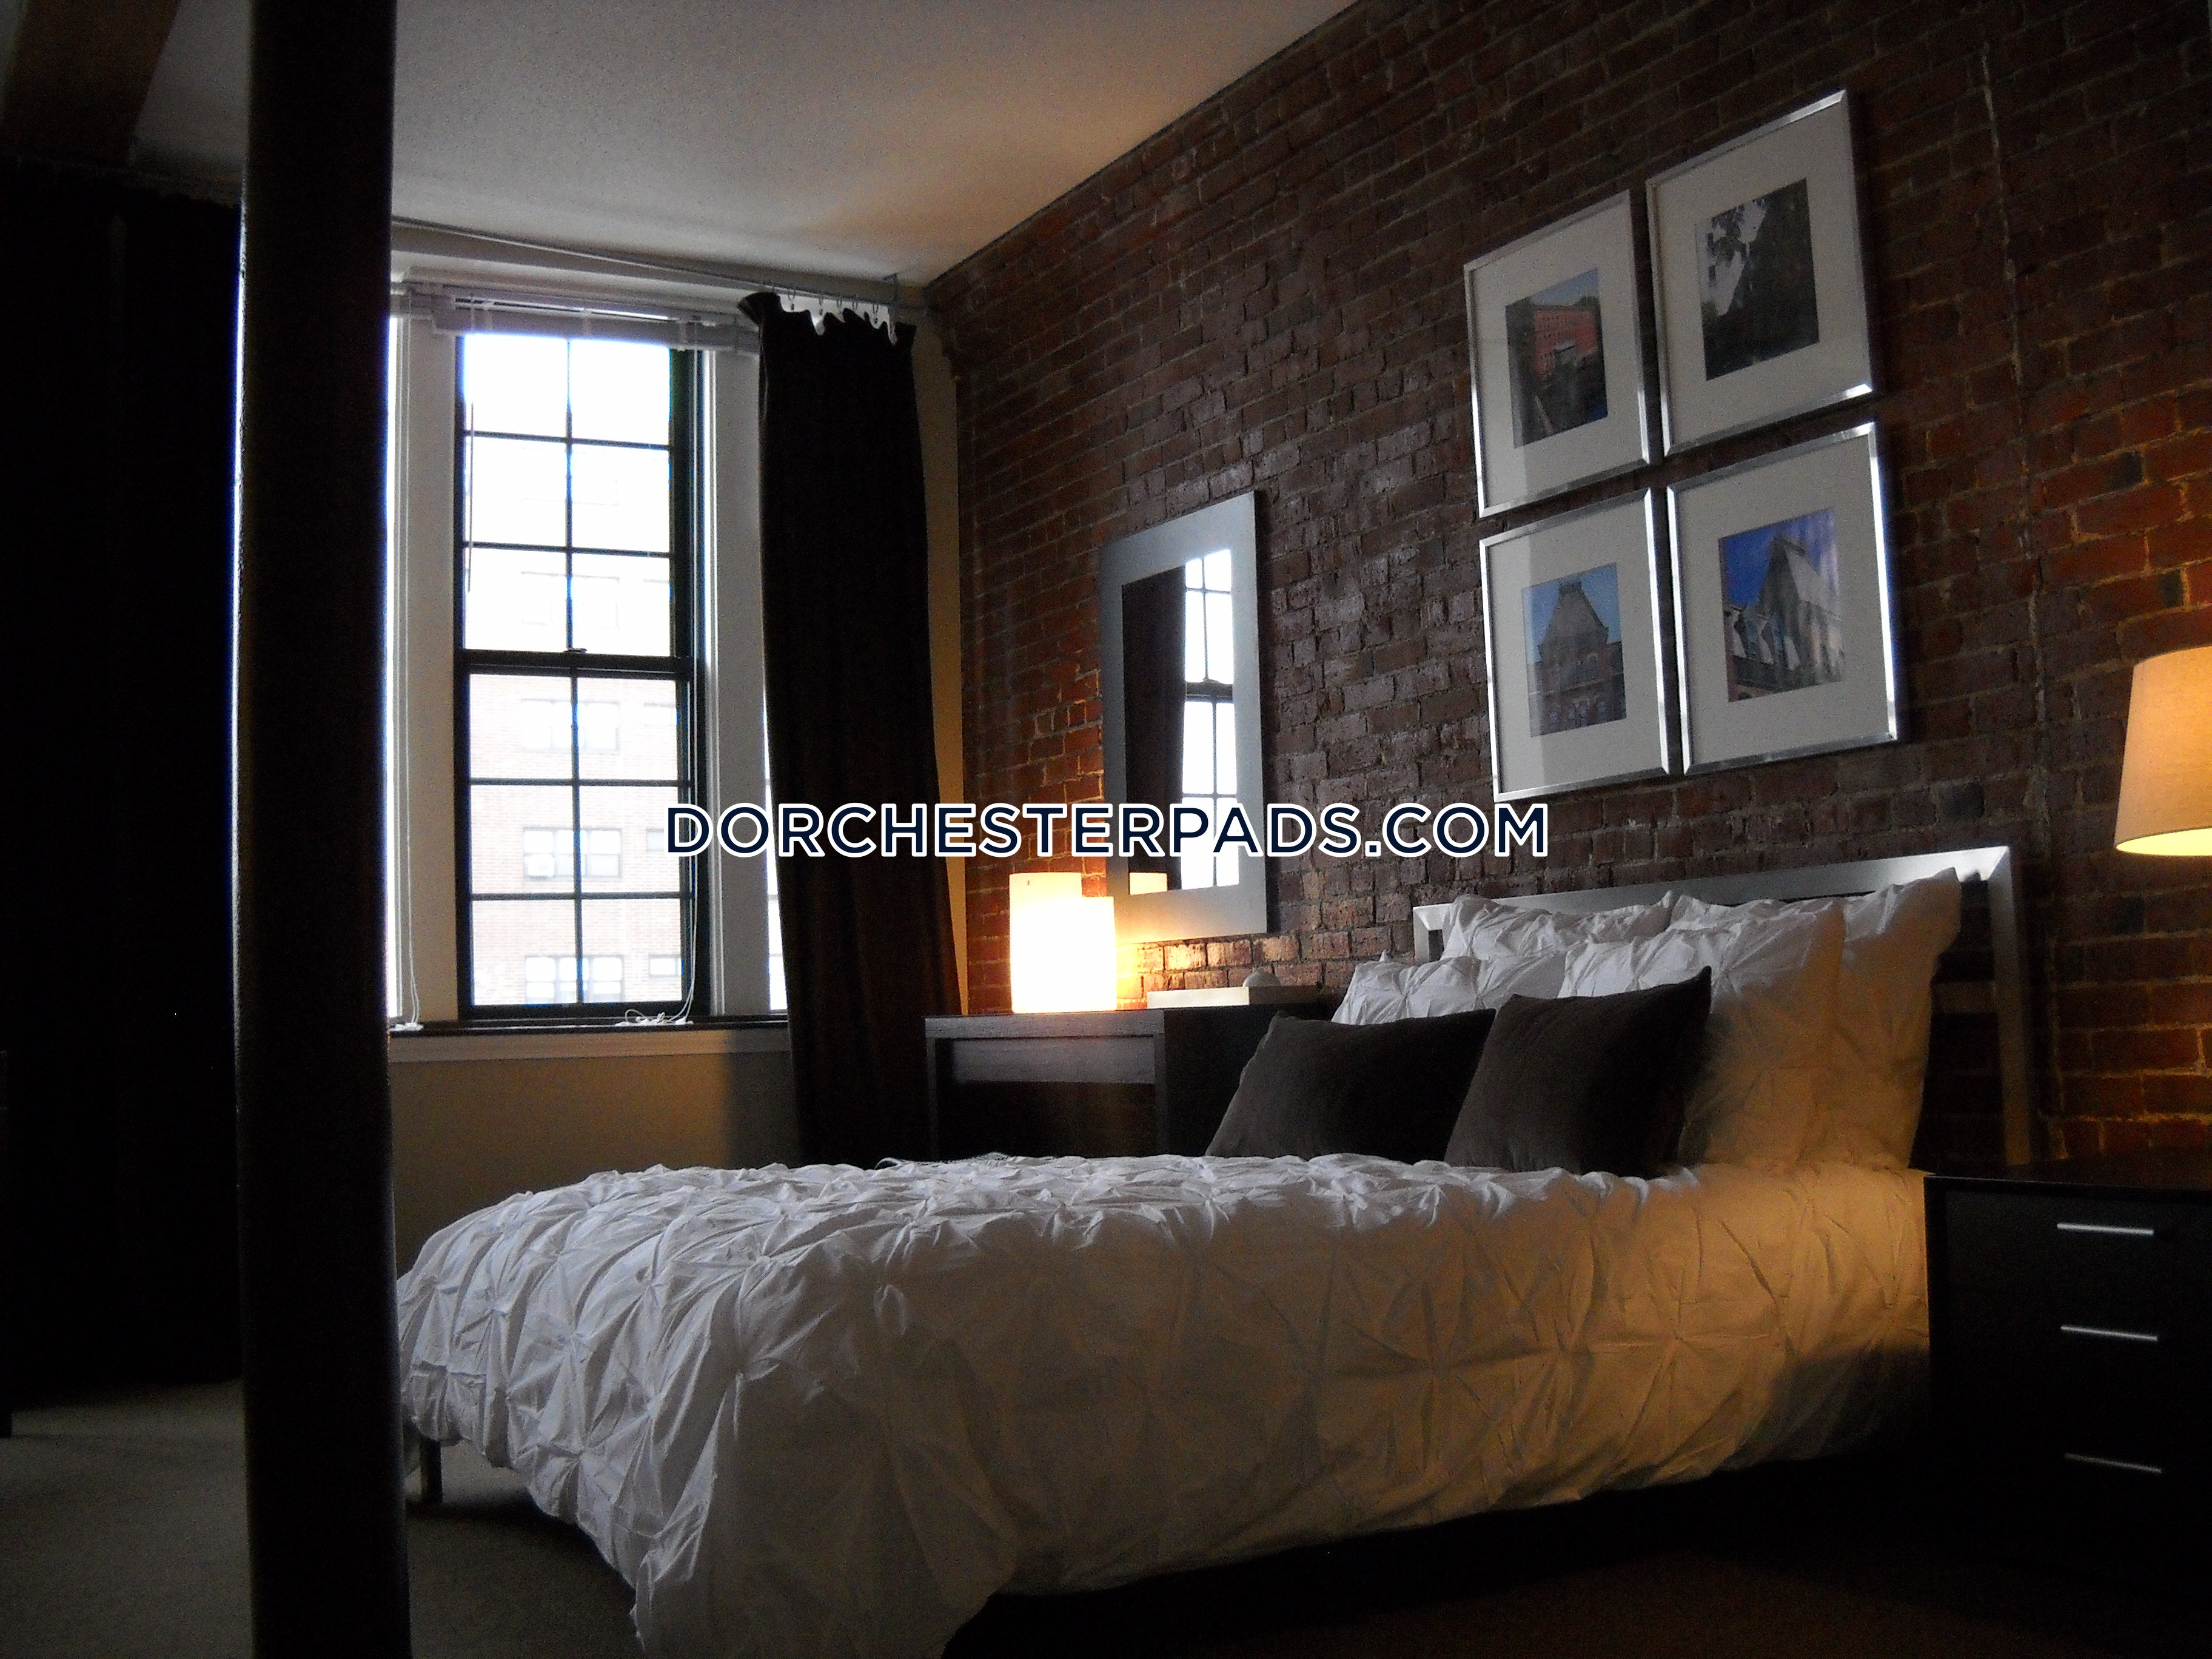 2bed Apartment For 2 540 Mo Inboston Dorchester Lower